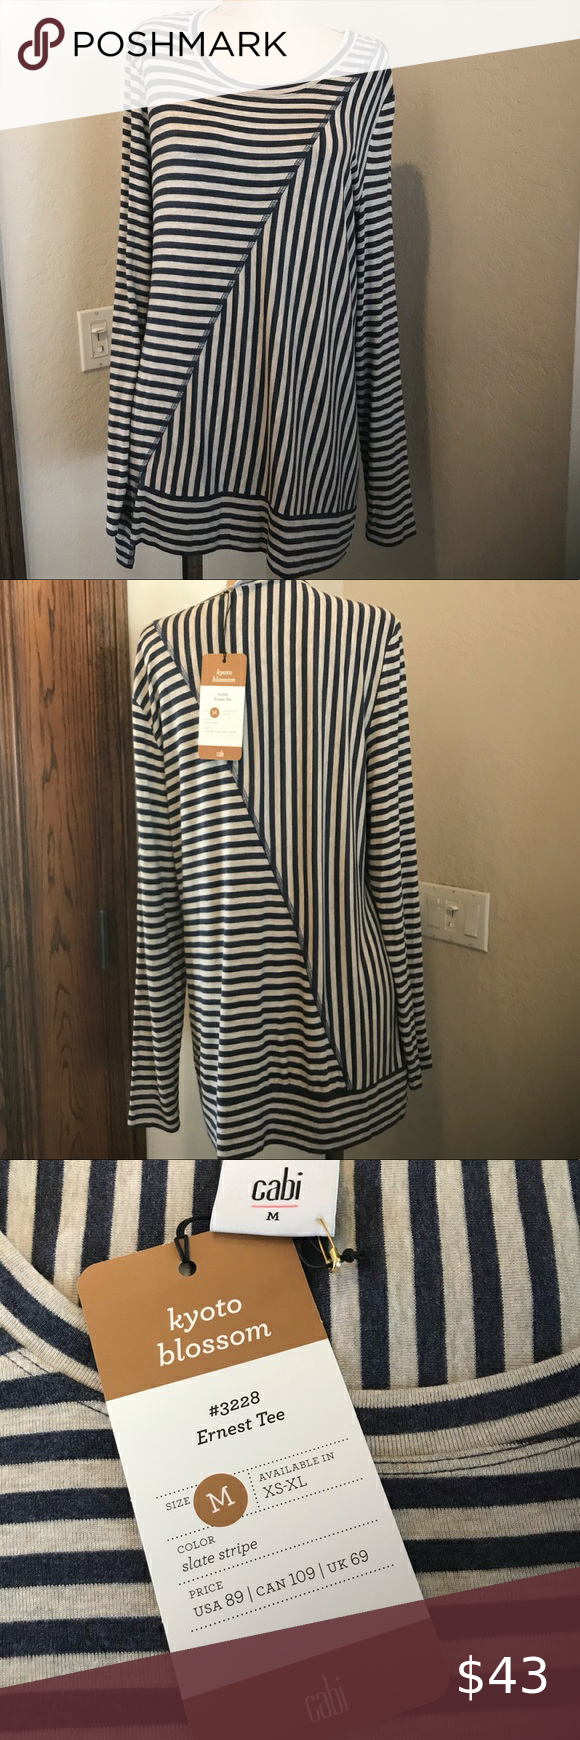 Nwt Cabi Kyoto Blossom Top New Cabi Kyoto Blossom To New With Tags Color Is Slate Stripe Fabric Is Lightweight And The Softest In 2020 Clothes Design Fabric Stripe